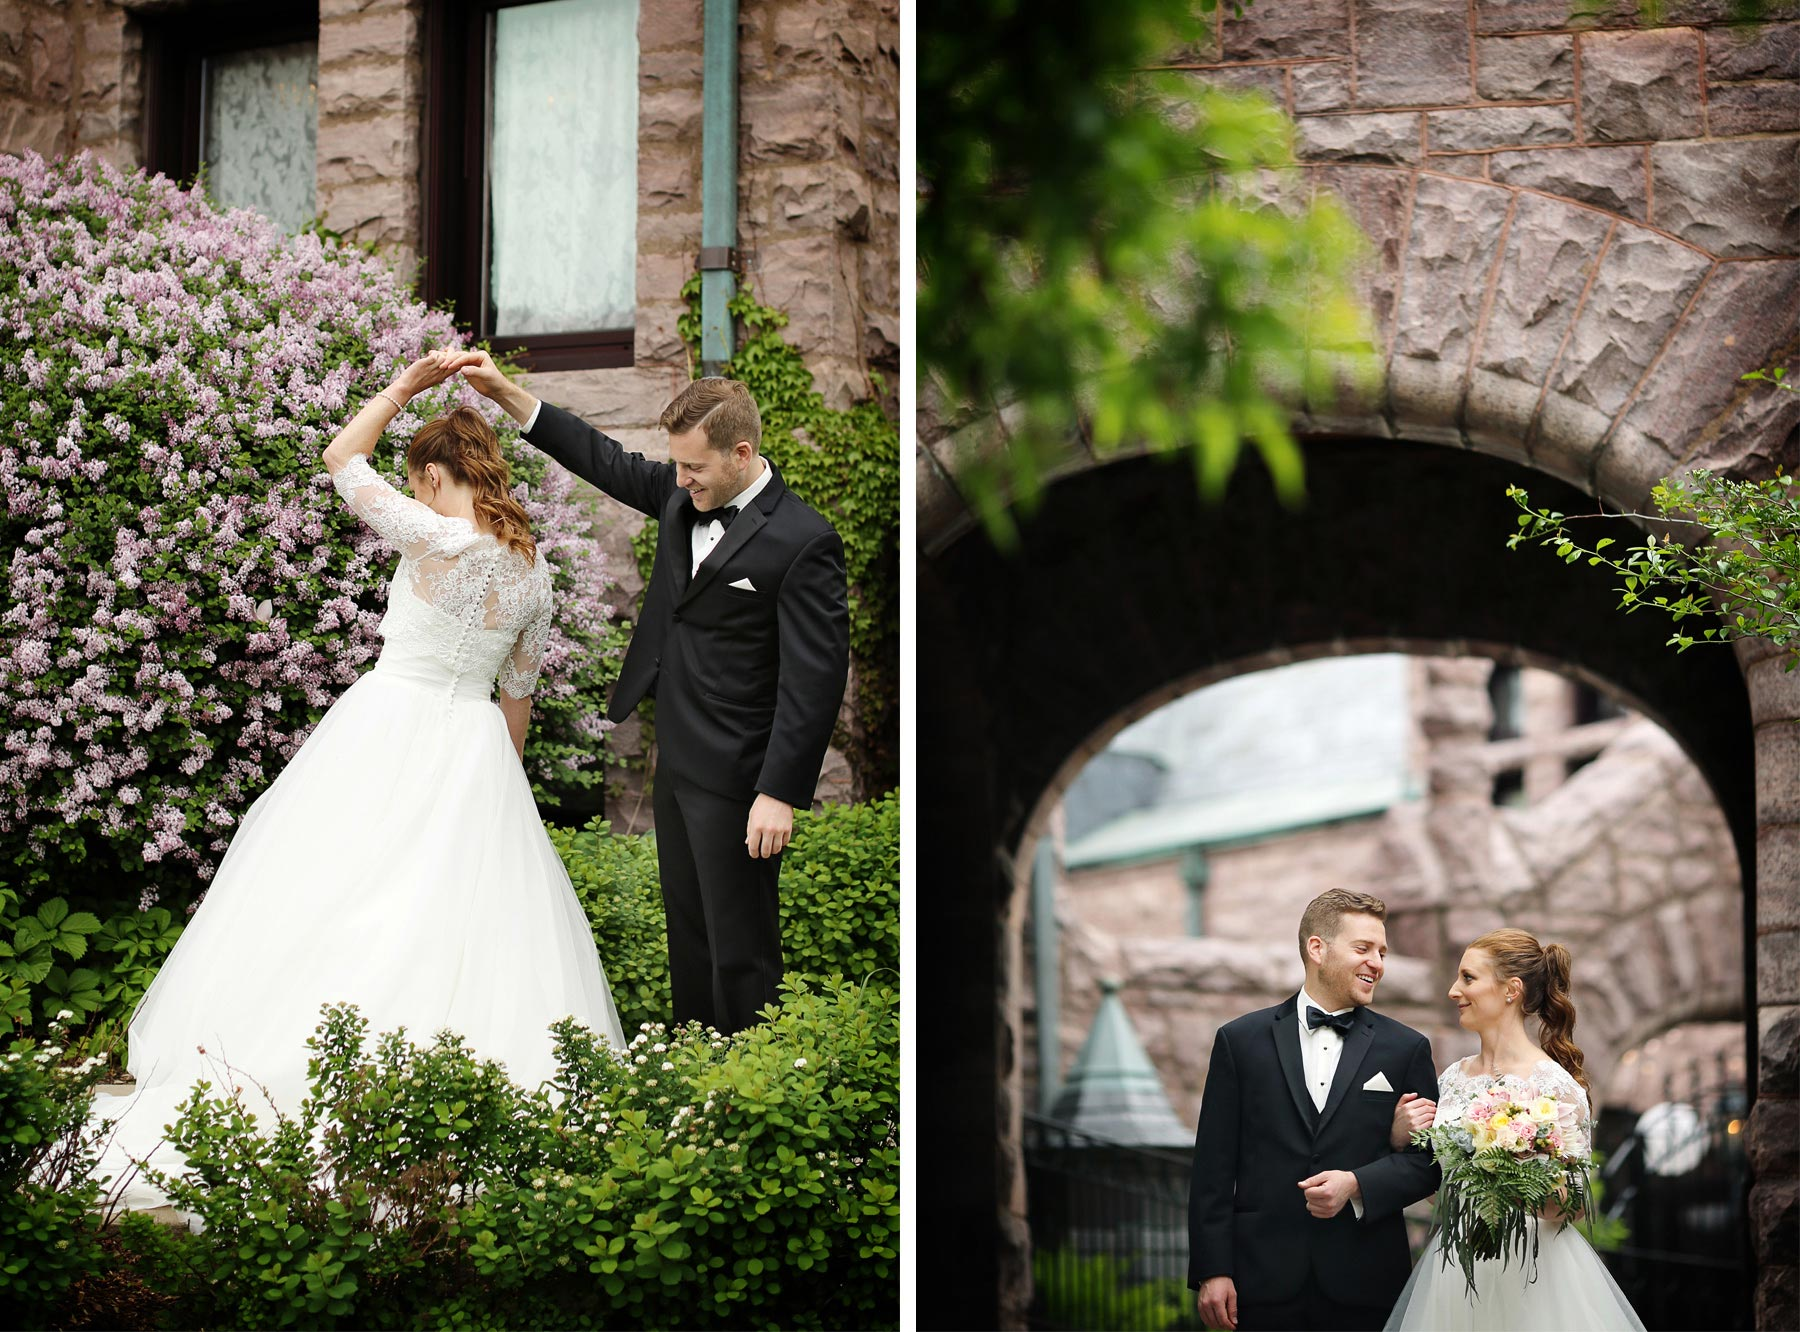 09-Minneapolis-Minnesota-Wedding-Photography-by-Vick-Photography--Van-Dusen-Mansion-First-Look.jpg